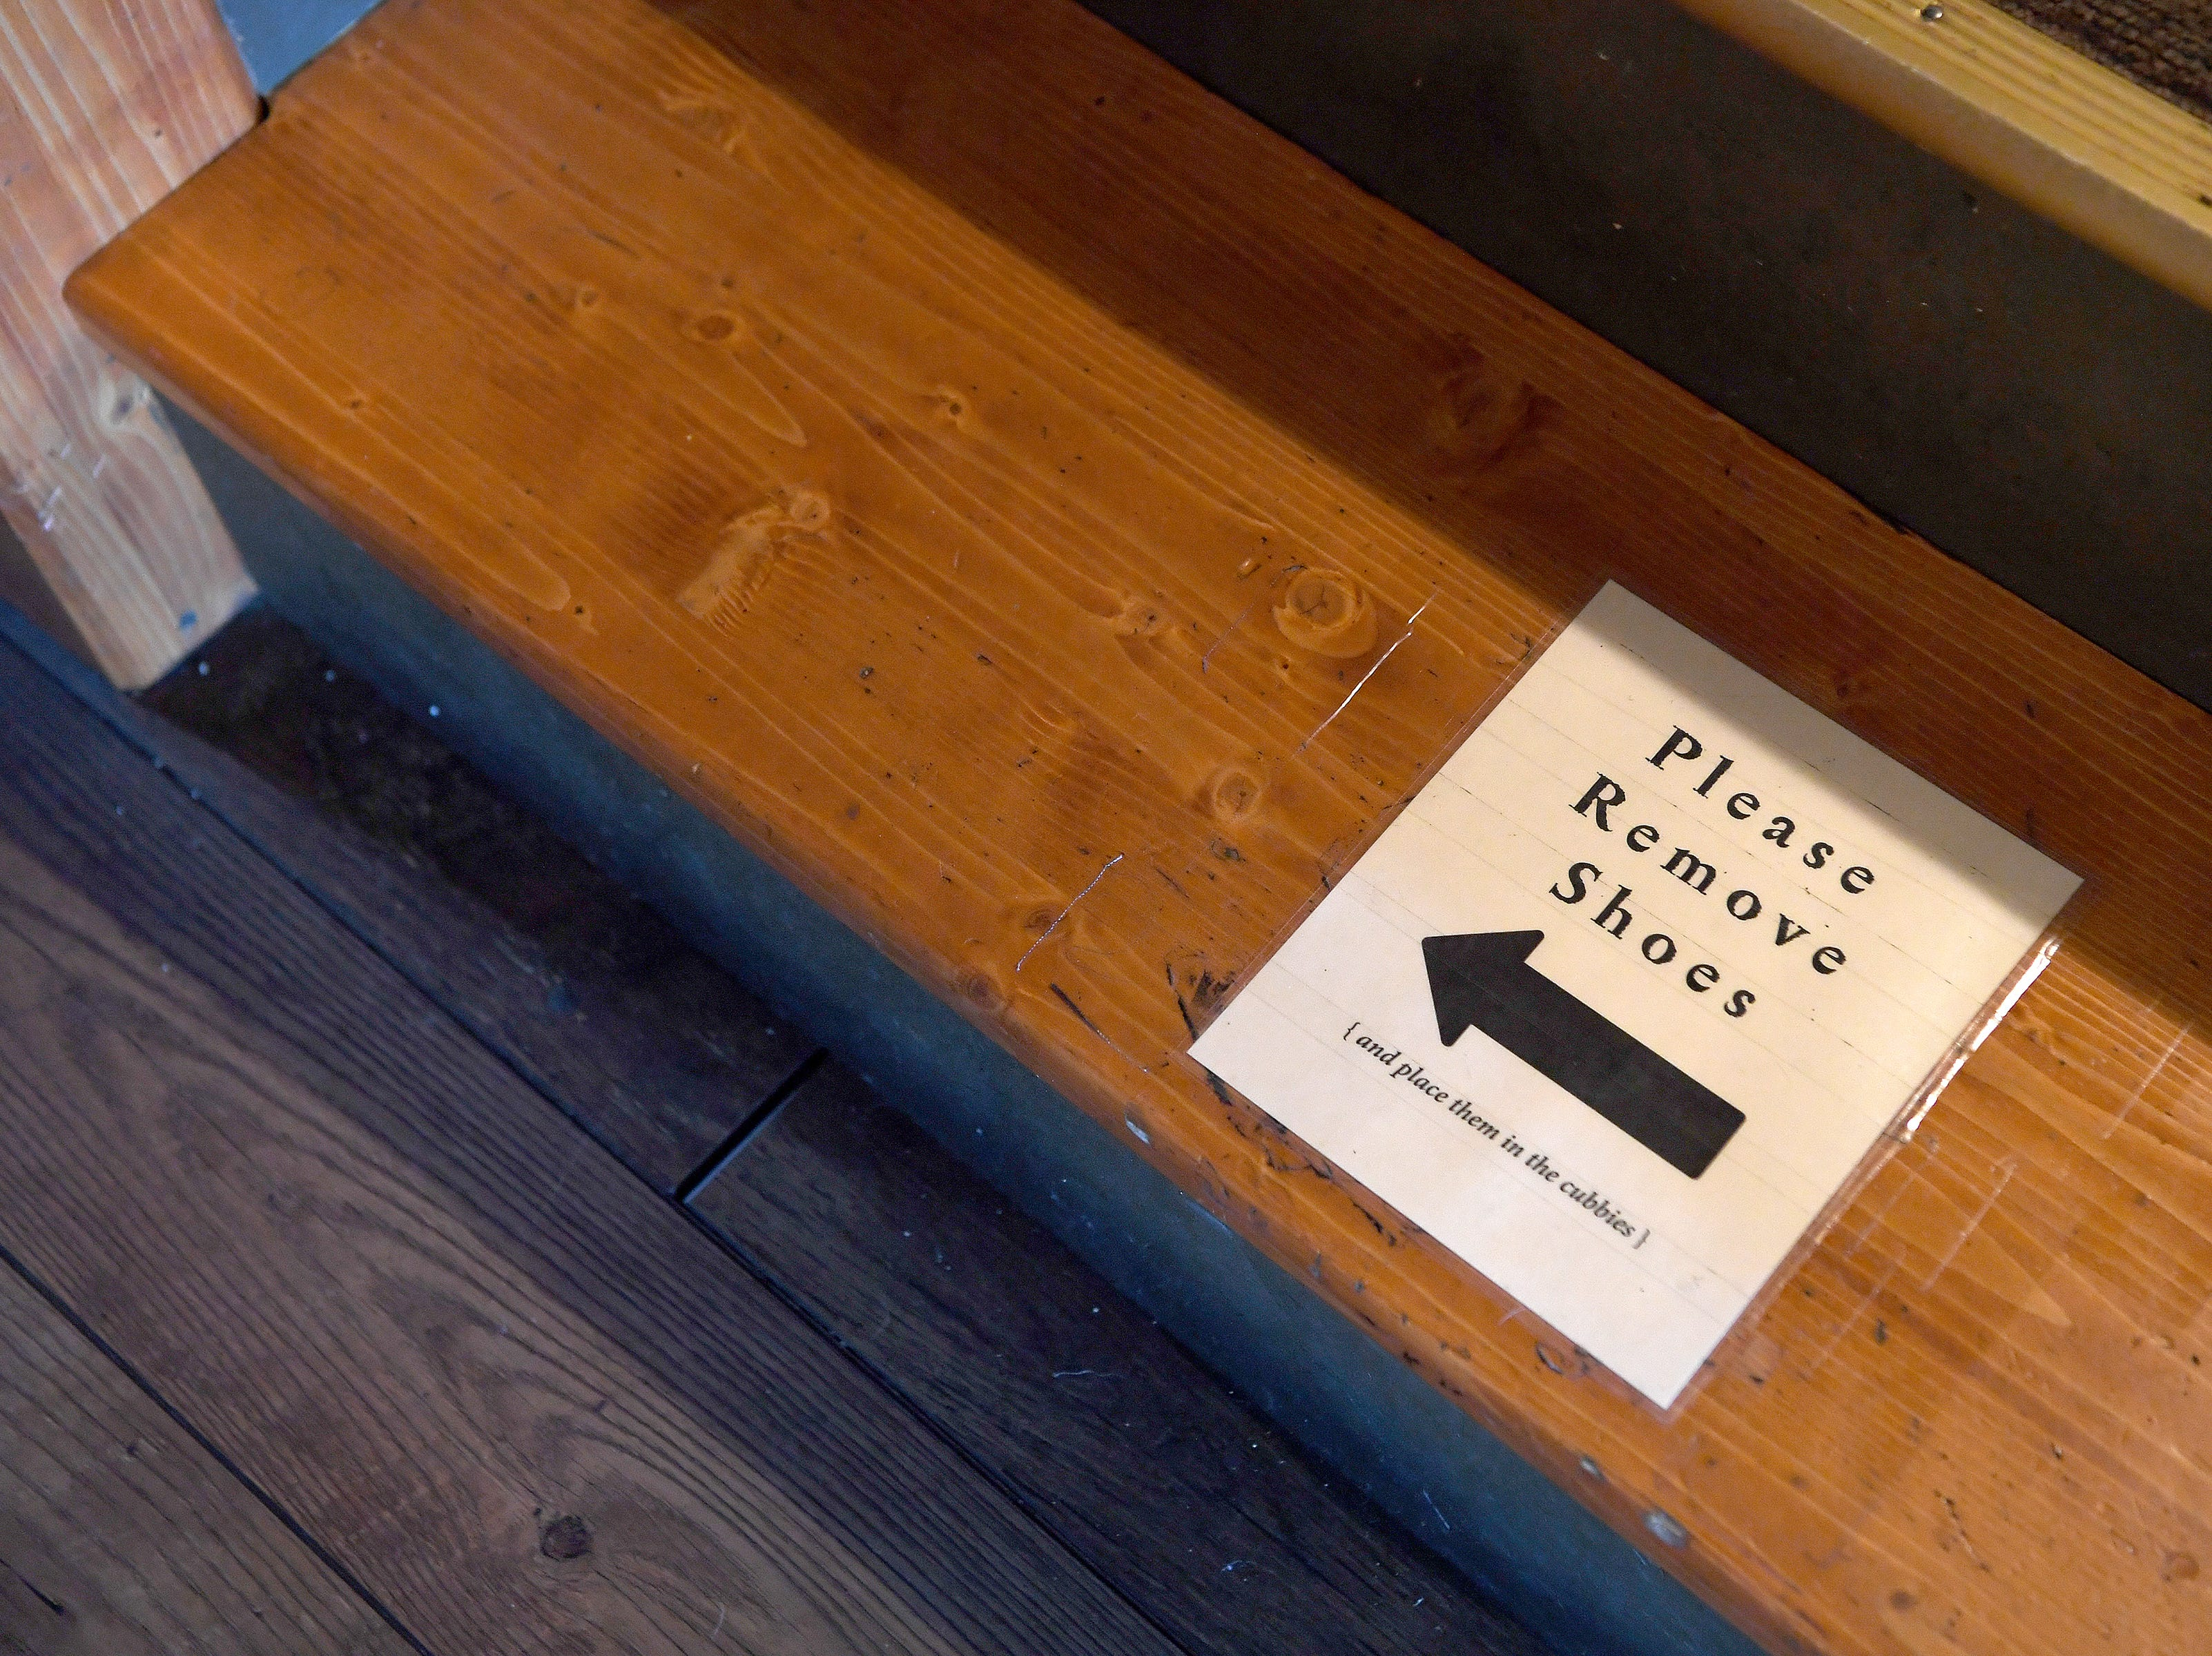 An area of Dobra Tea's West Asheville location requires the removal of shoes for raised floor seating.